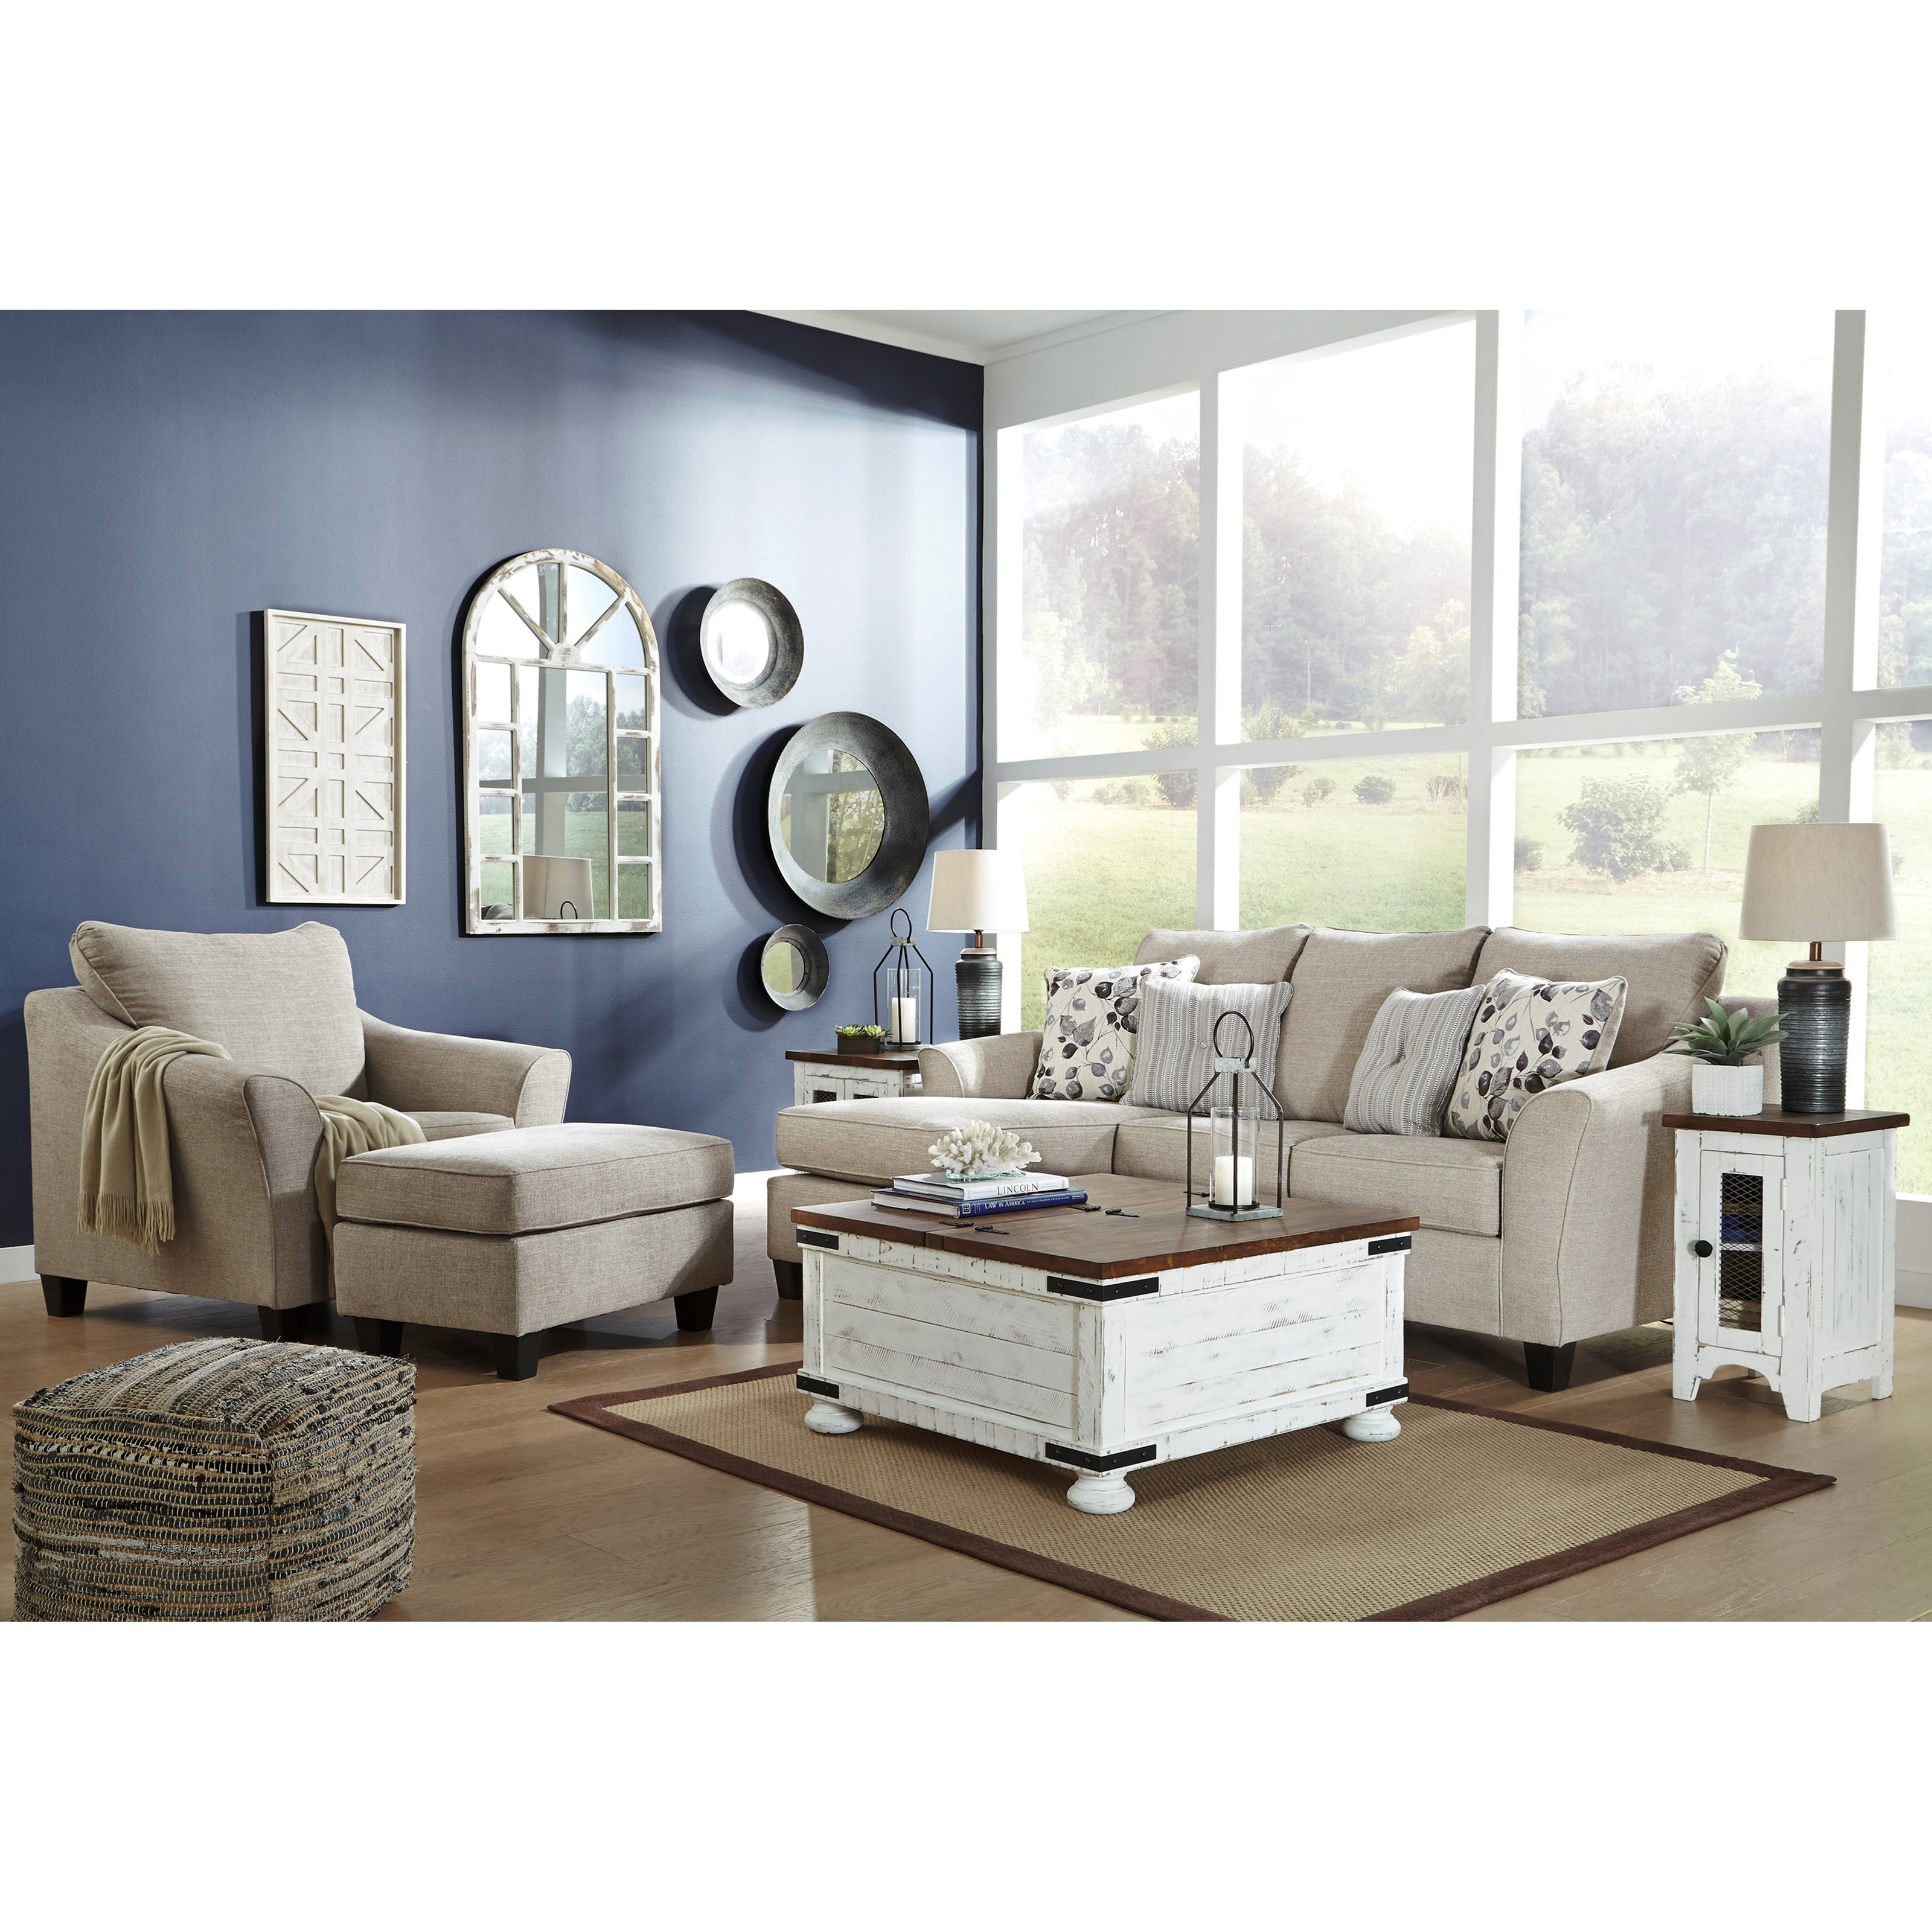 Abney Stationary Living Room Group at Sadler's Home Furnishings